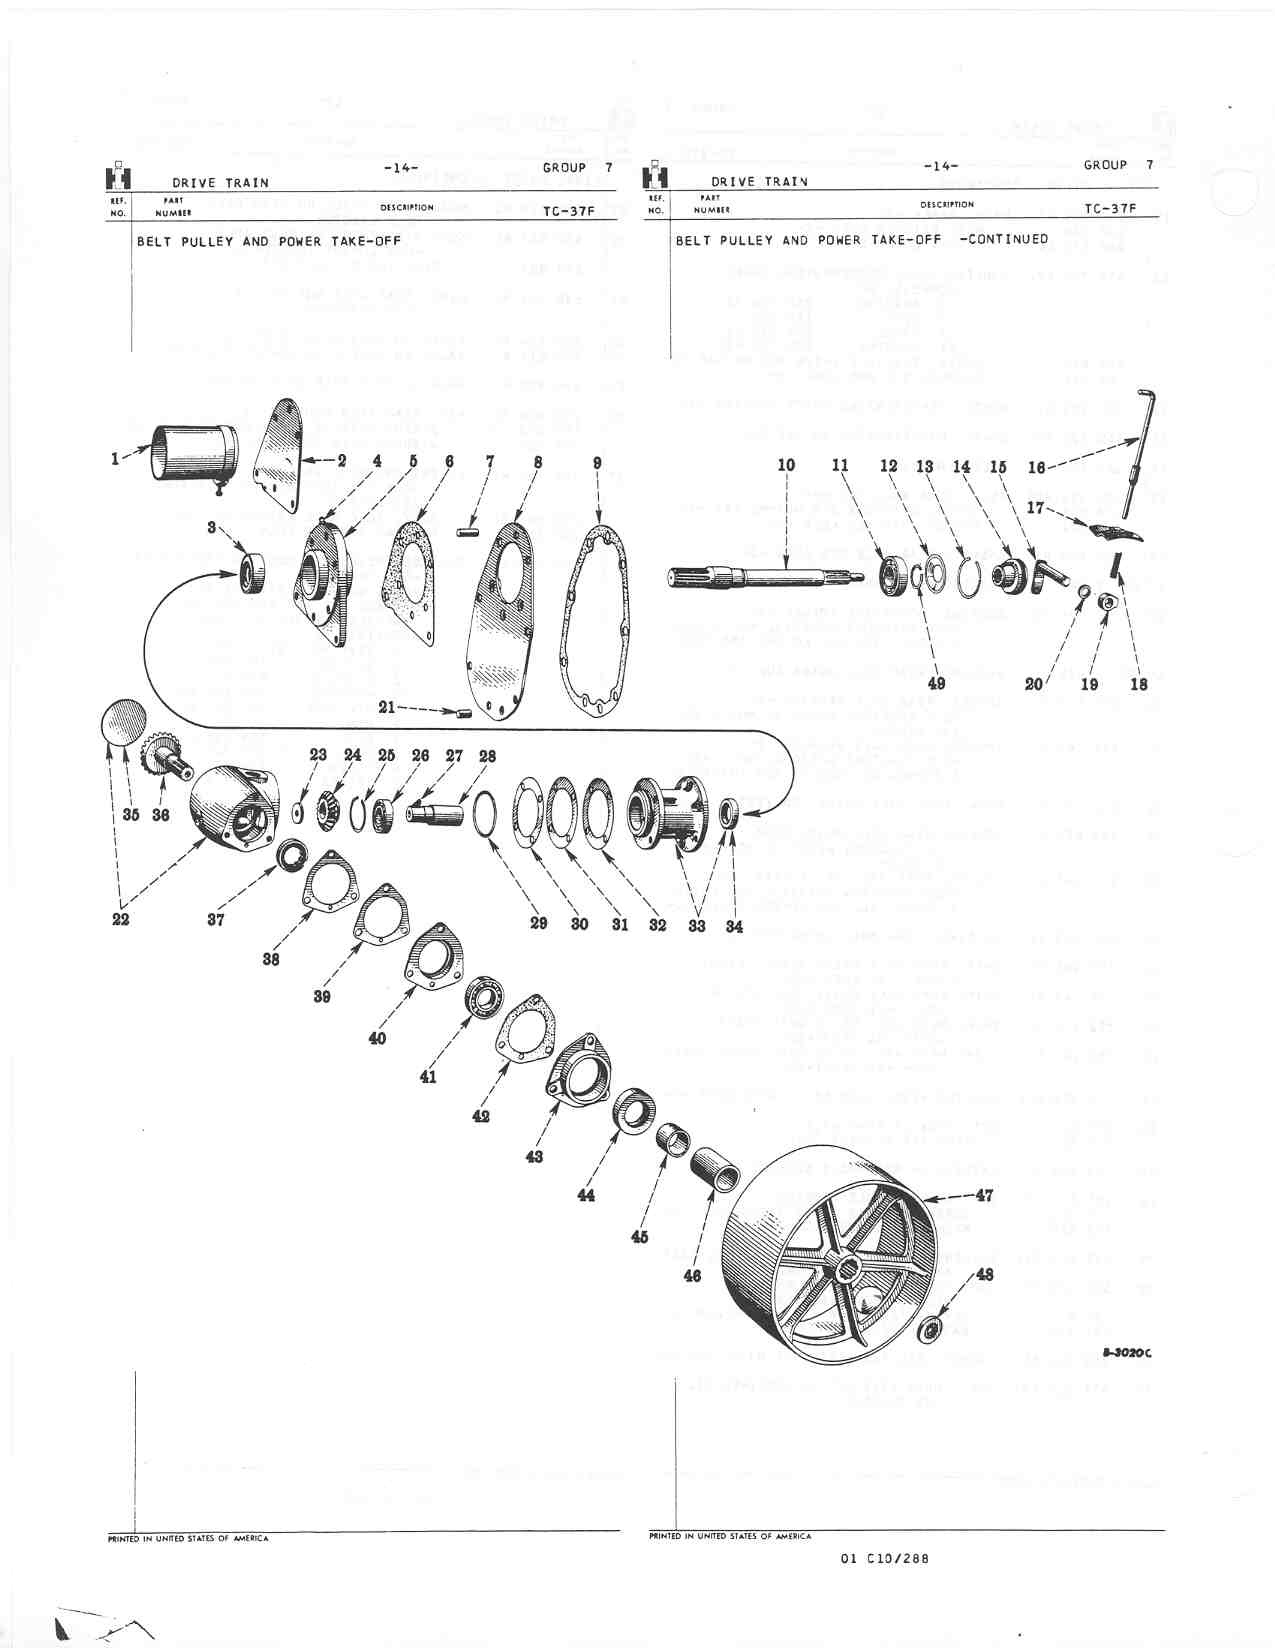 ih 706 hydraulic diagram - wiring diagram farmall m steering diagram farmall m wiring diagram